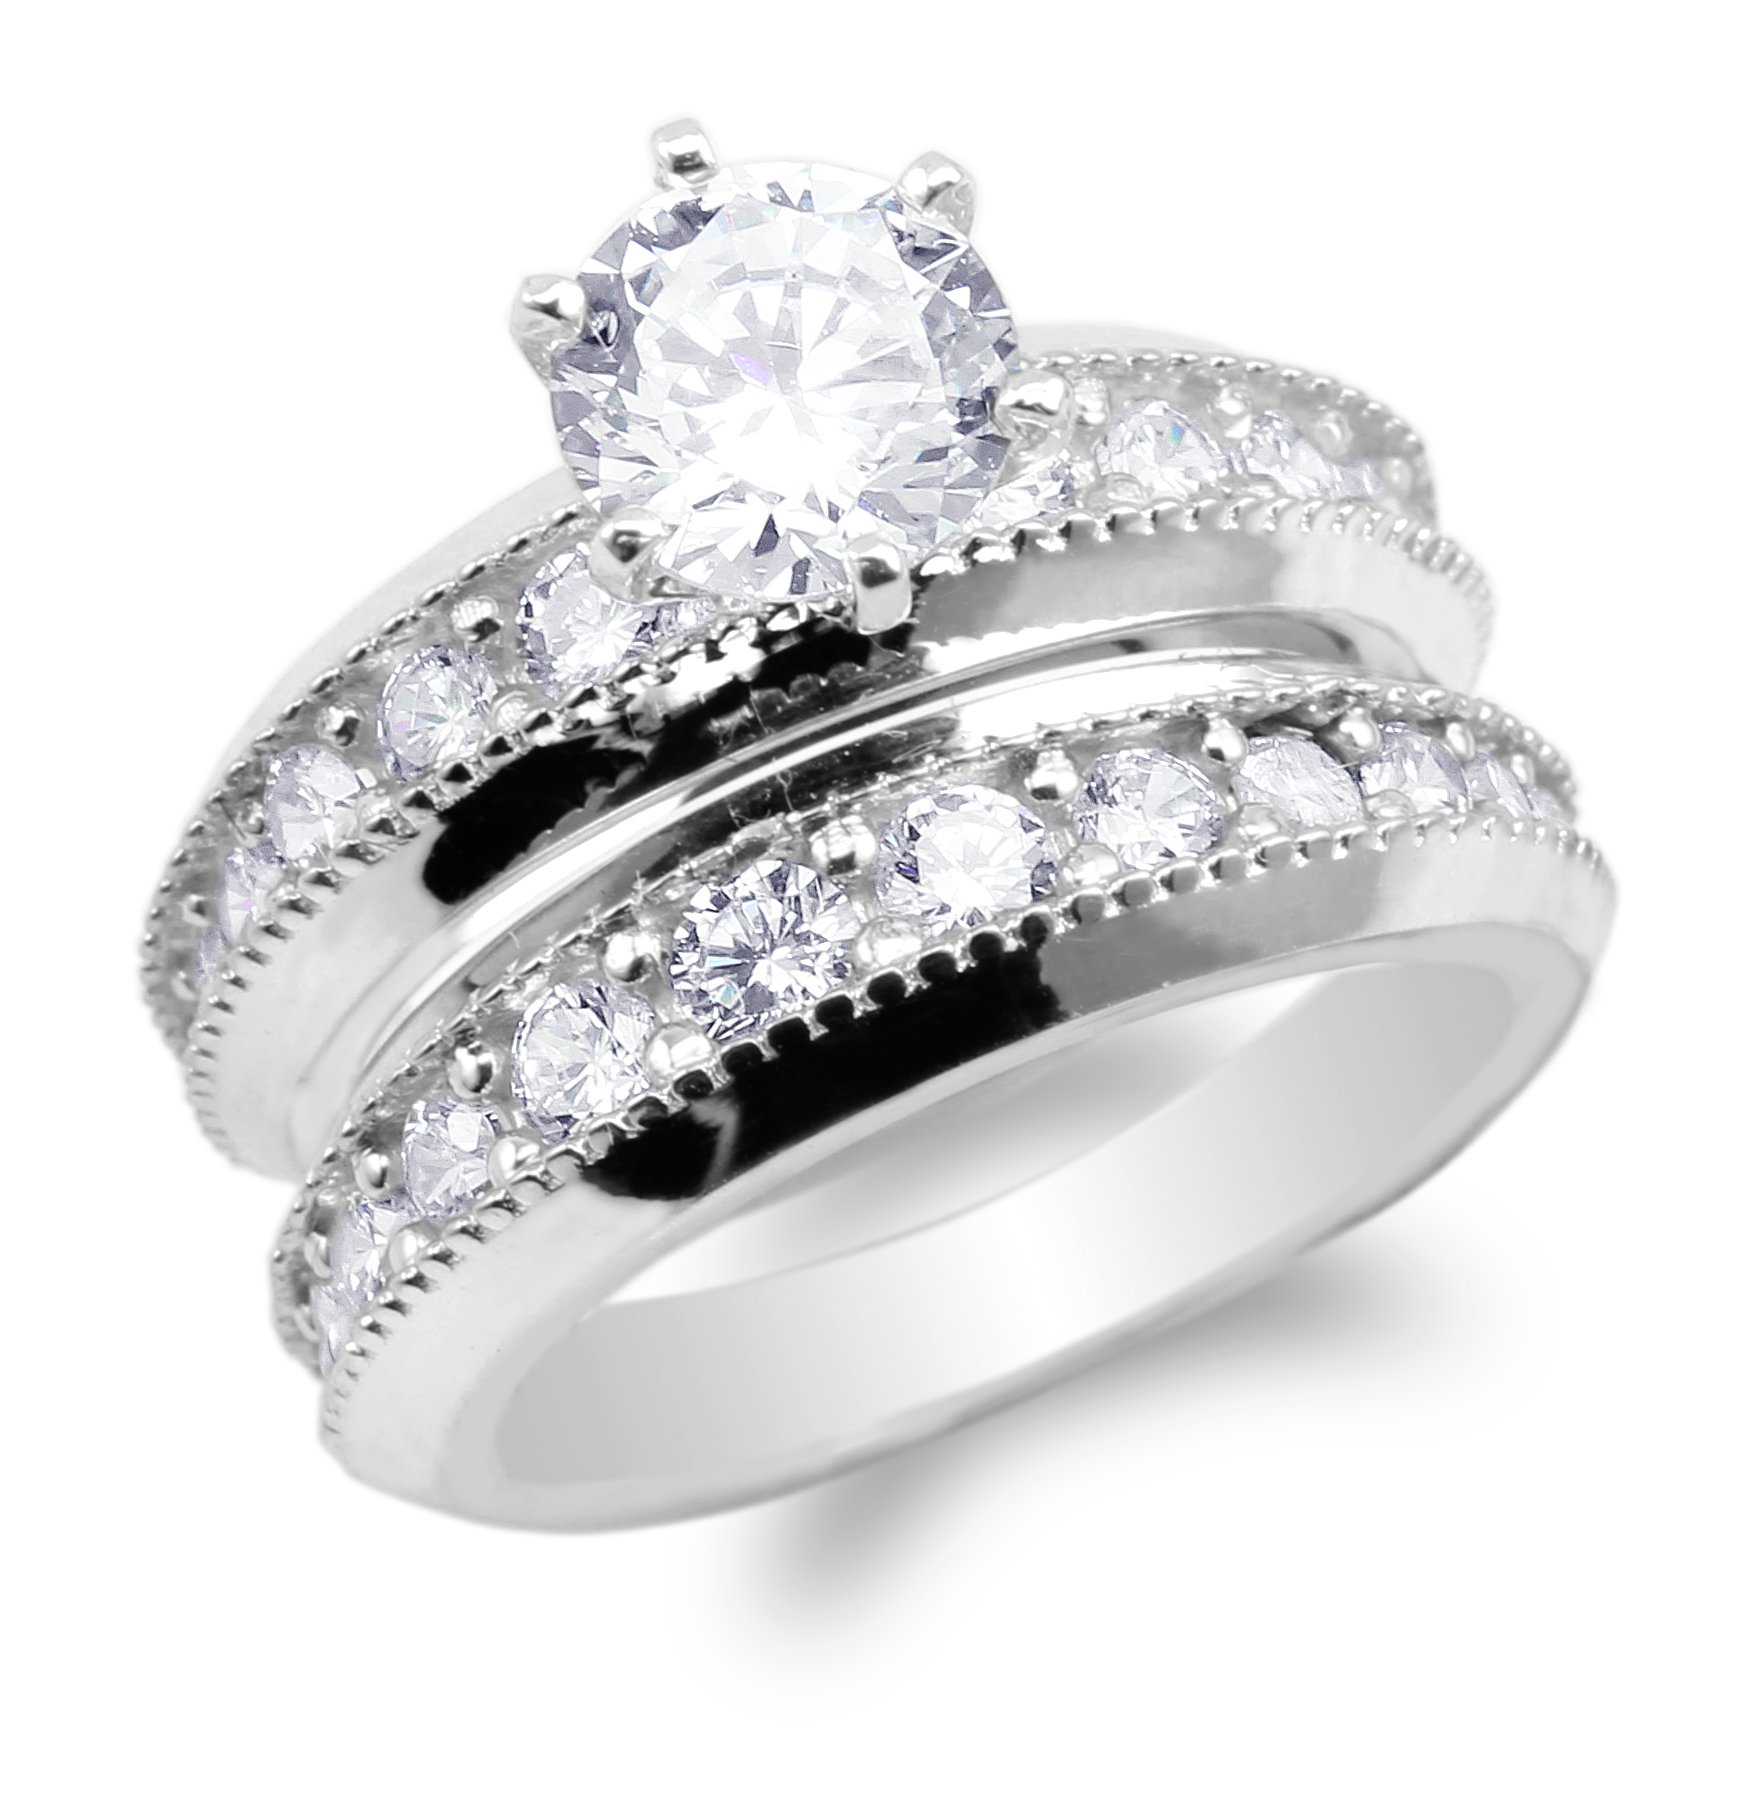 Womens 925 Sterling Silver Set Round CZ Embedded Wedding Solitaire Ring Size 9.5